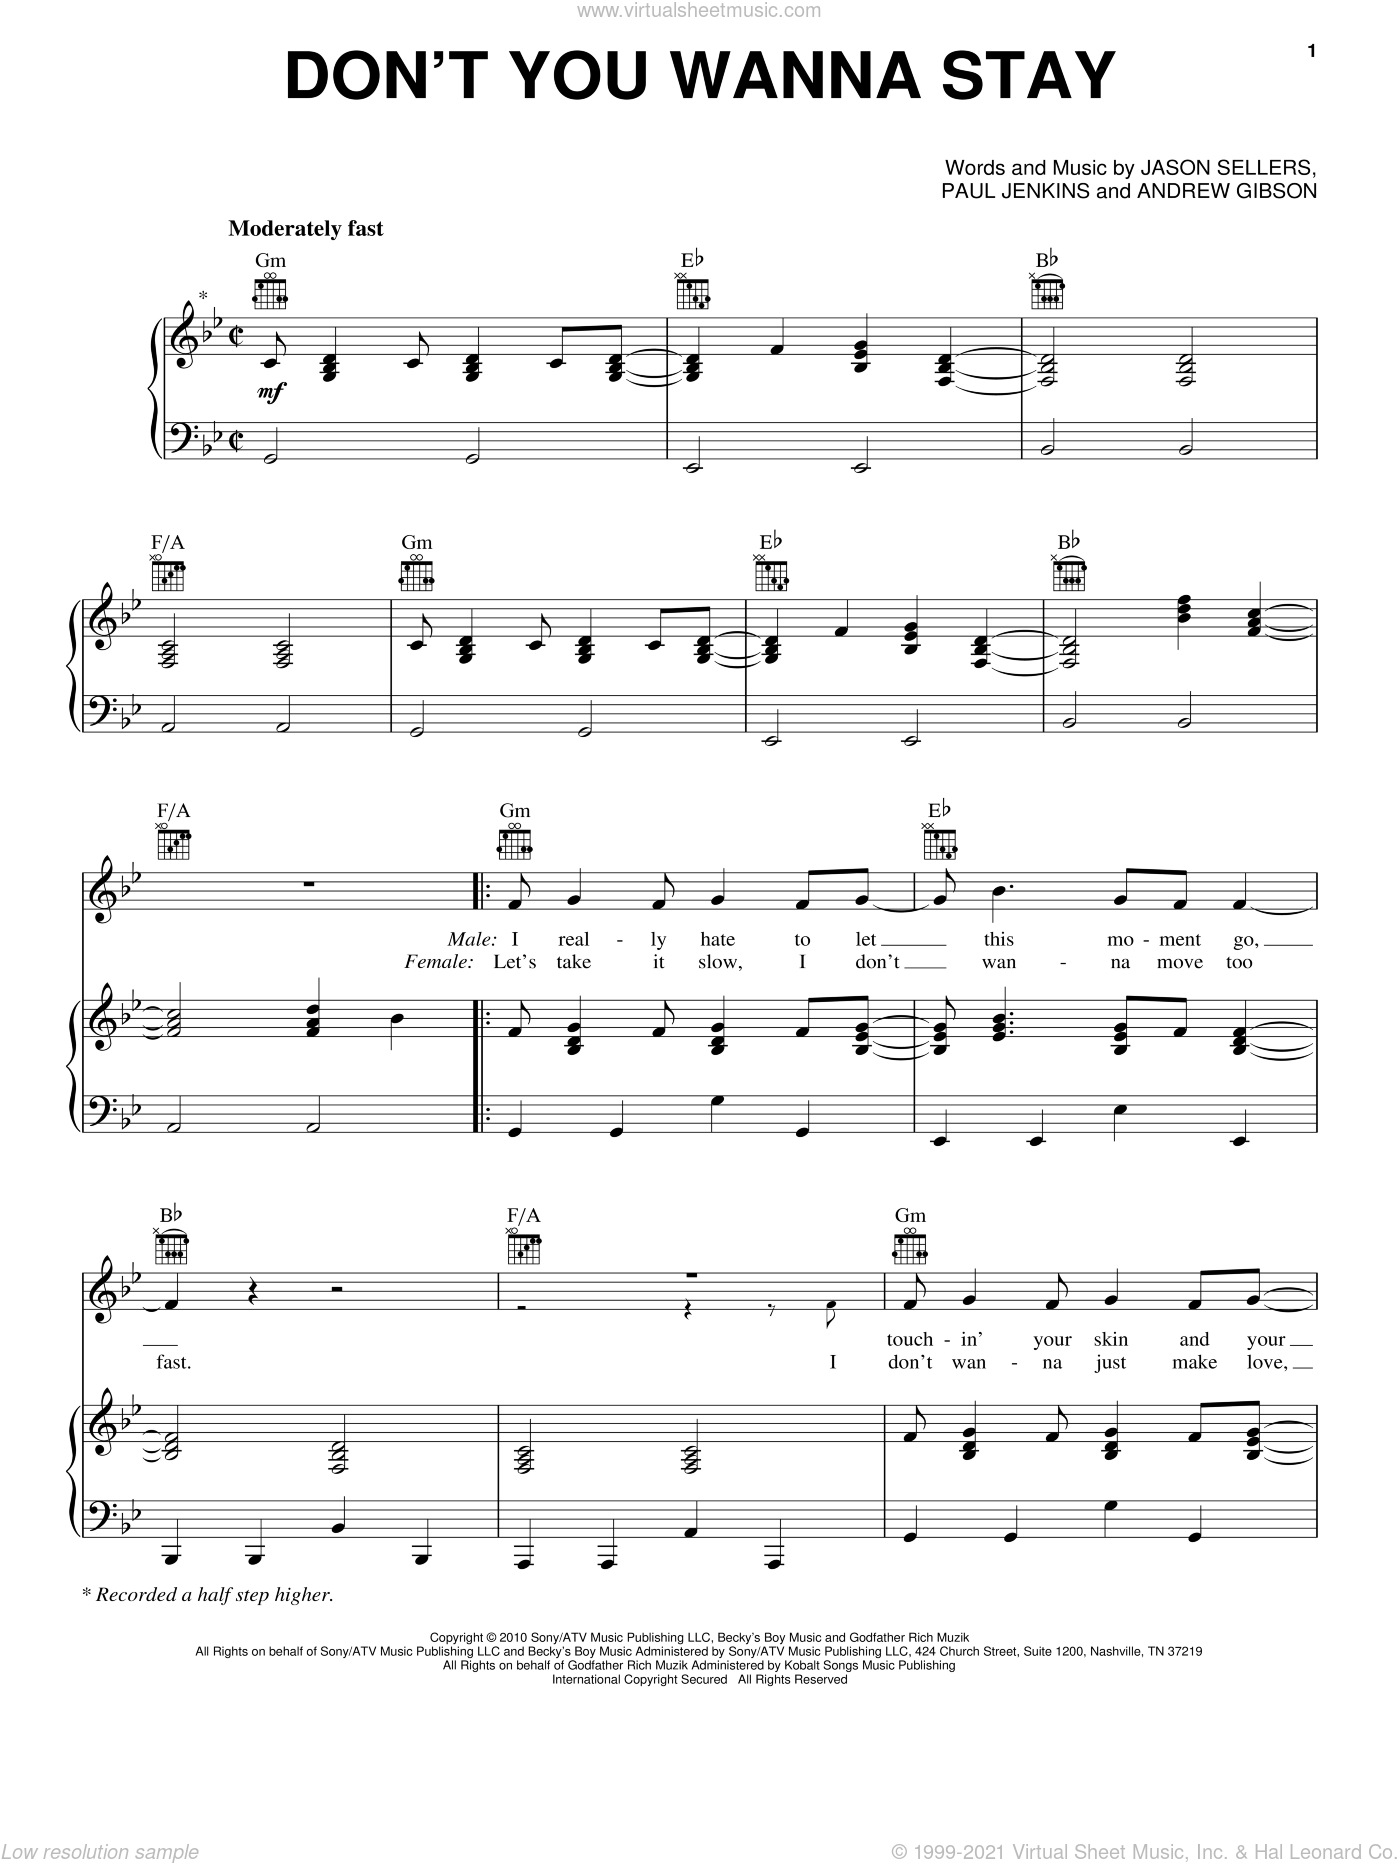 Don't You Wanna Stay sheet music for voice, piano or guitar by Paul Jenkins